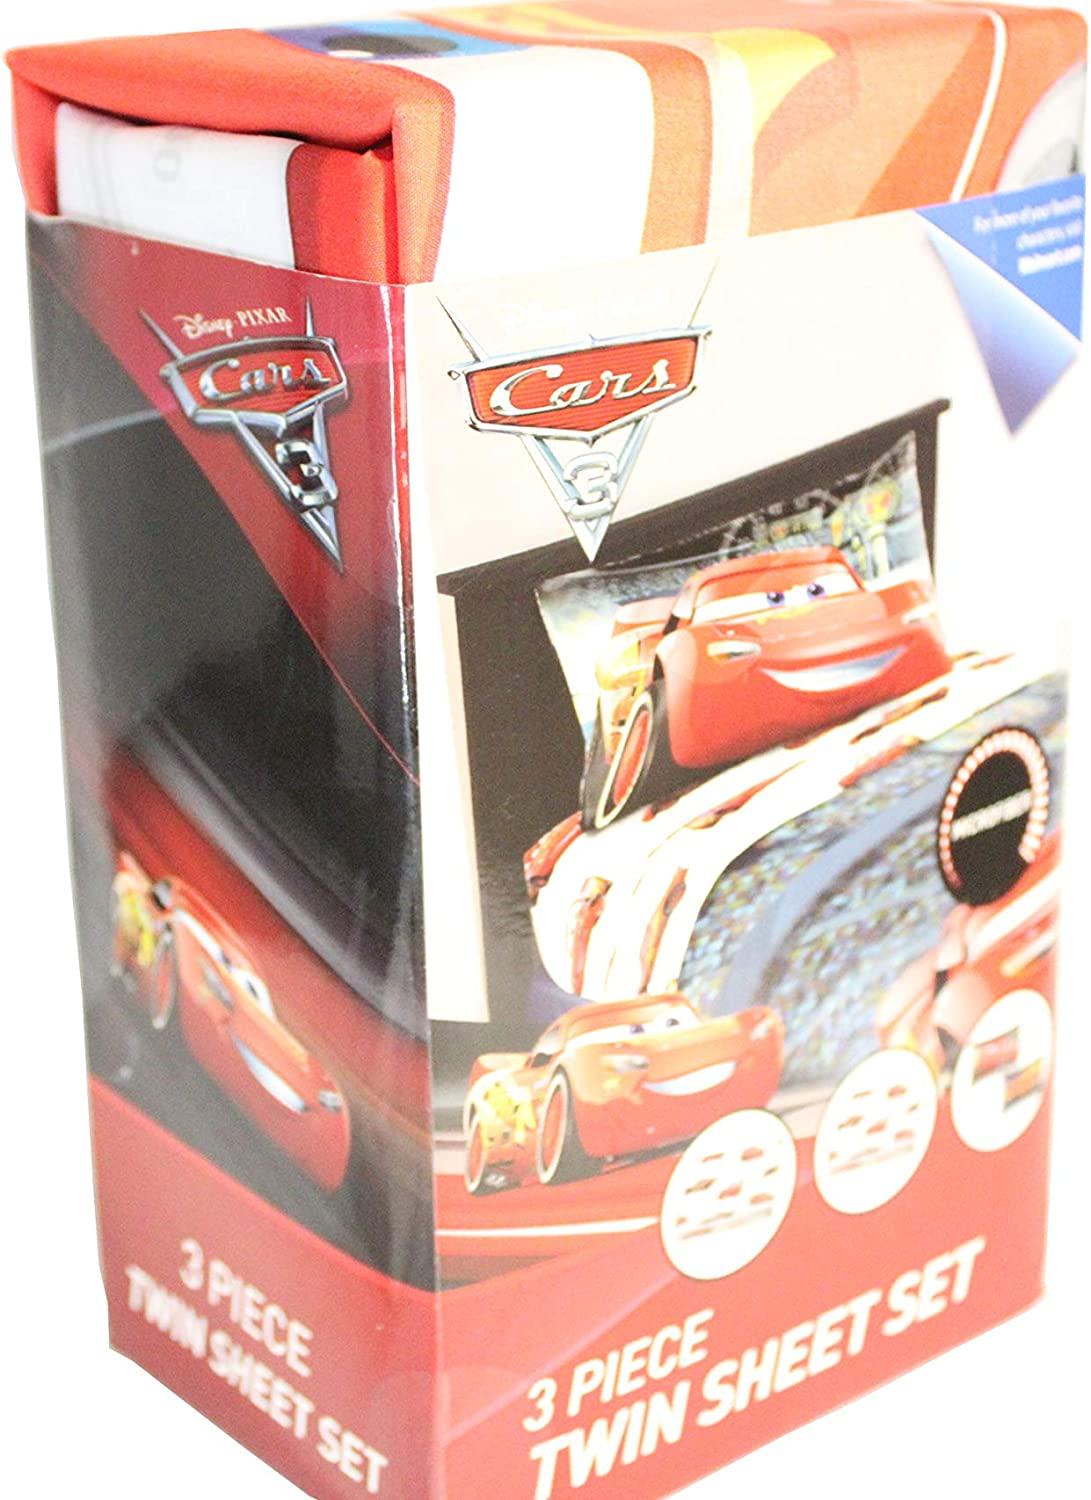 Disney Pixars Cars JF29586WM Twin Sheet Set, Kid's Bedding